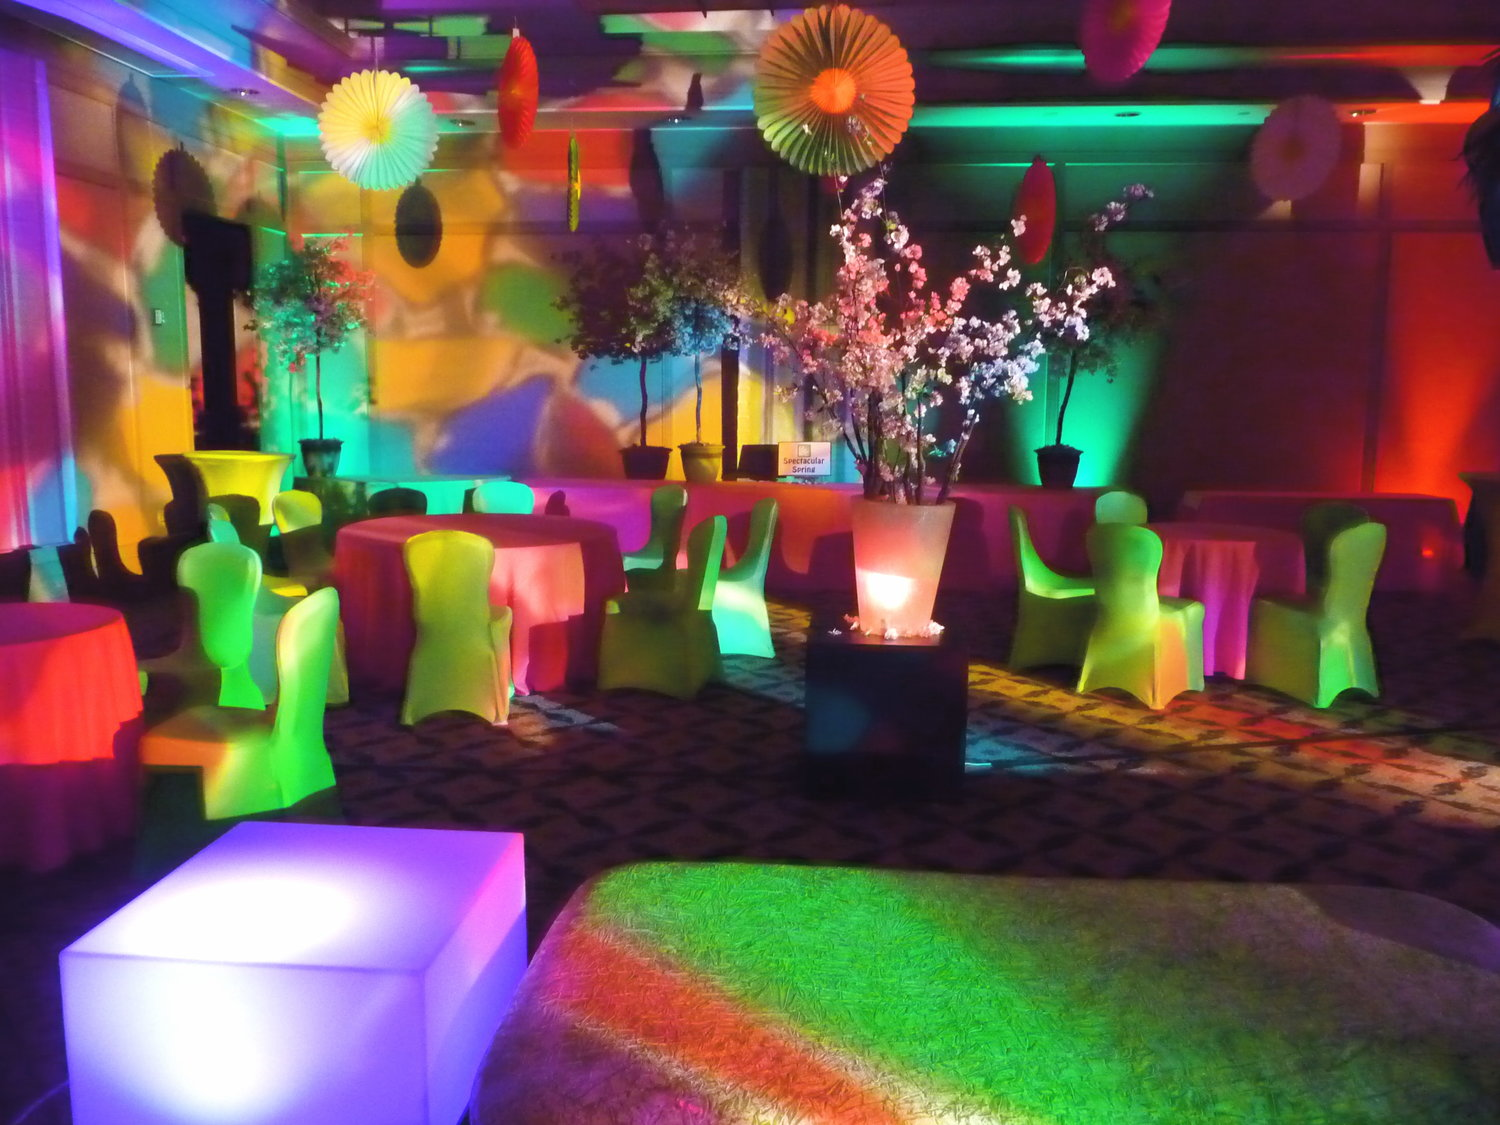 NJ+event+design+decor+lighting+rentals+gala+fundraiser+auction+school.jpg